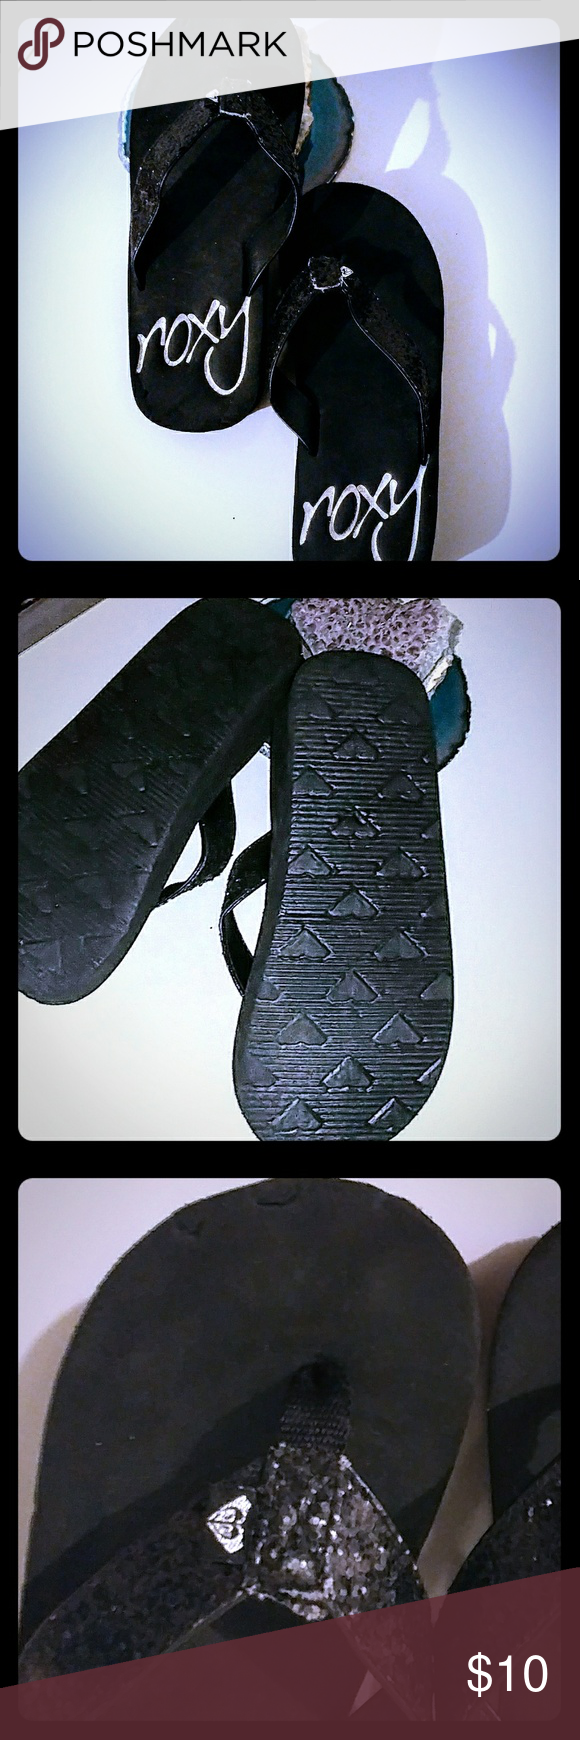 """Roxy size 3 black flip flops with a 2"""" platform. Roxy size 3 black flip flops with a 2"""" platform.  There is a small knick in the top of the left shoe(pic #3) which is barely noticable unless you are looking for it!  These are in great used condition. Roxy Shoes Sandals & Flip Flops"""